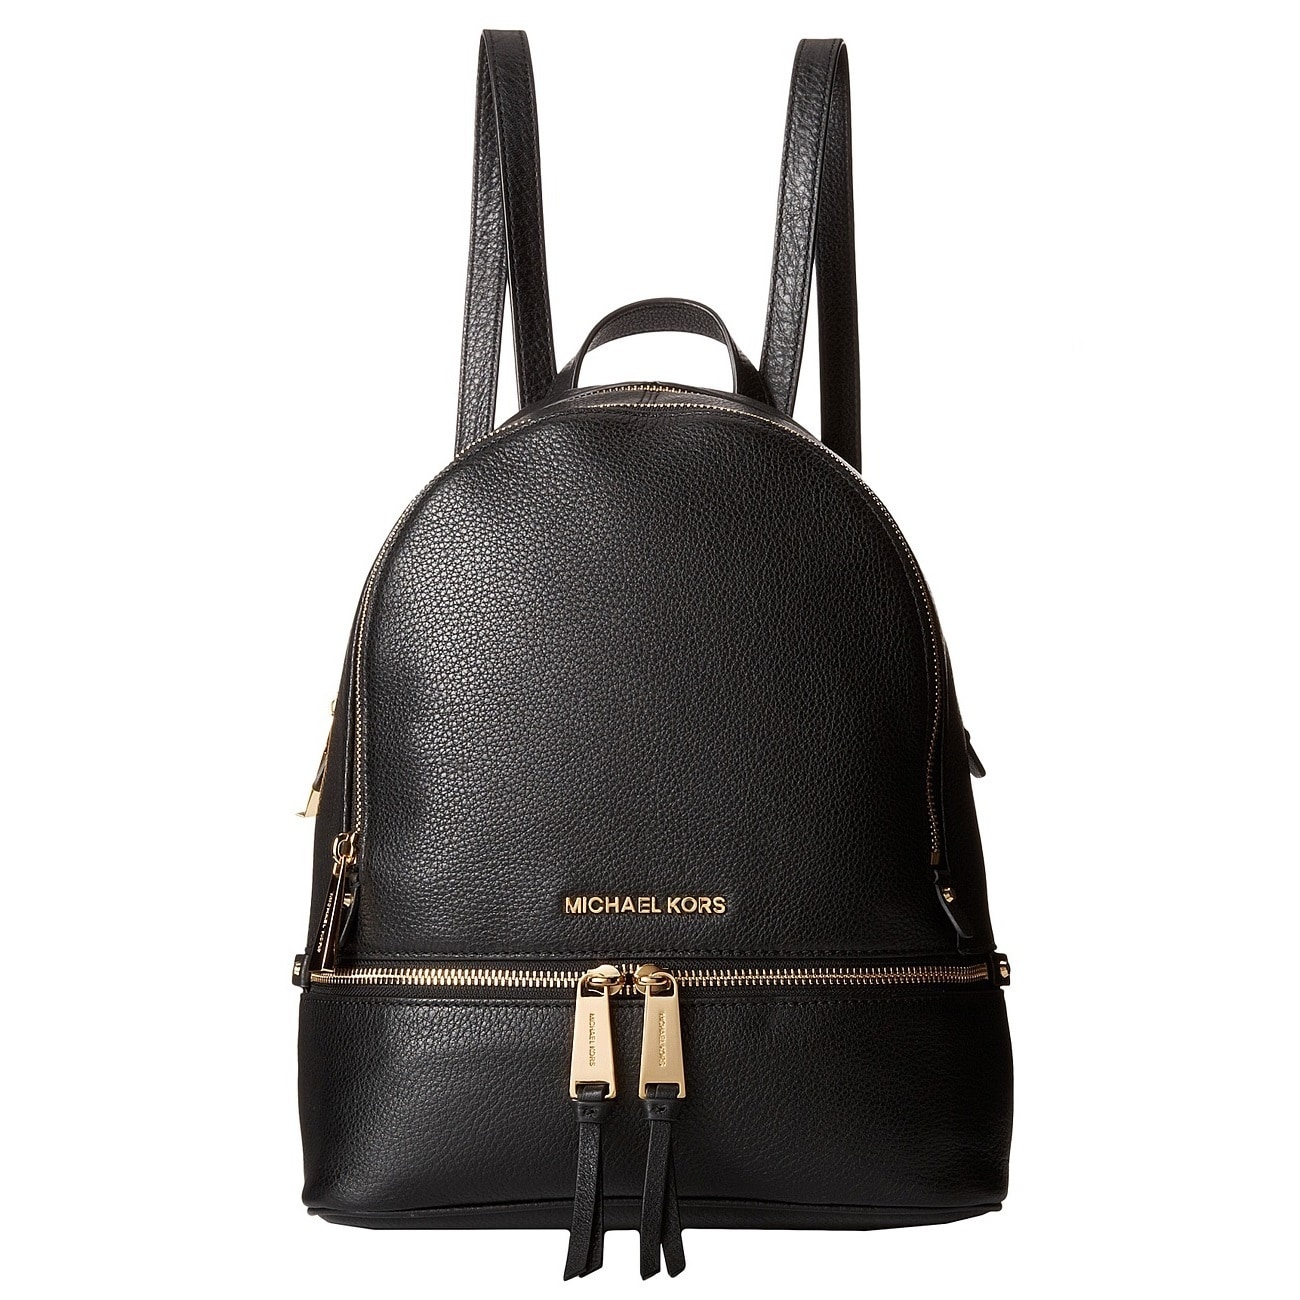 899409612c26 Shop Michael Kors Rhea Small Leather Backpack - Free Shipping Today ...